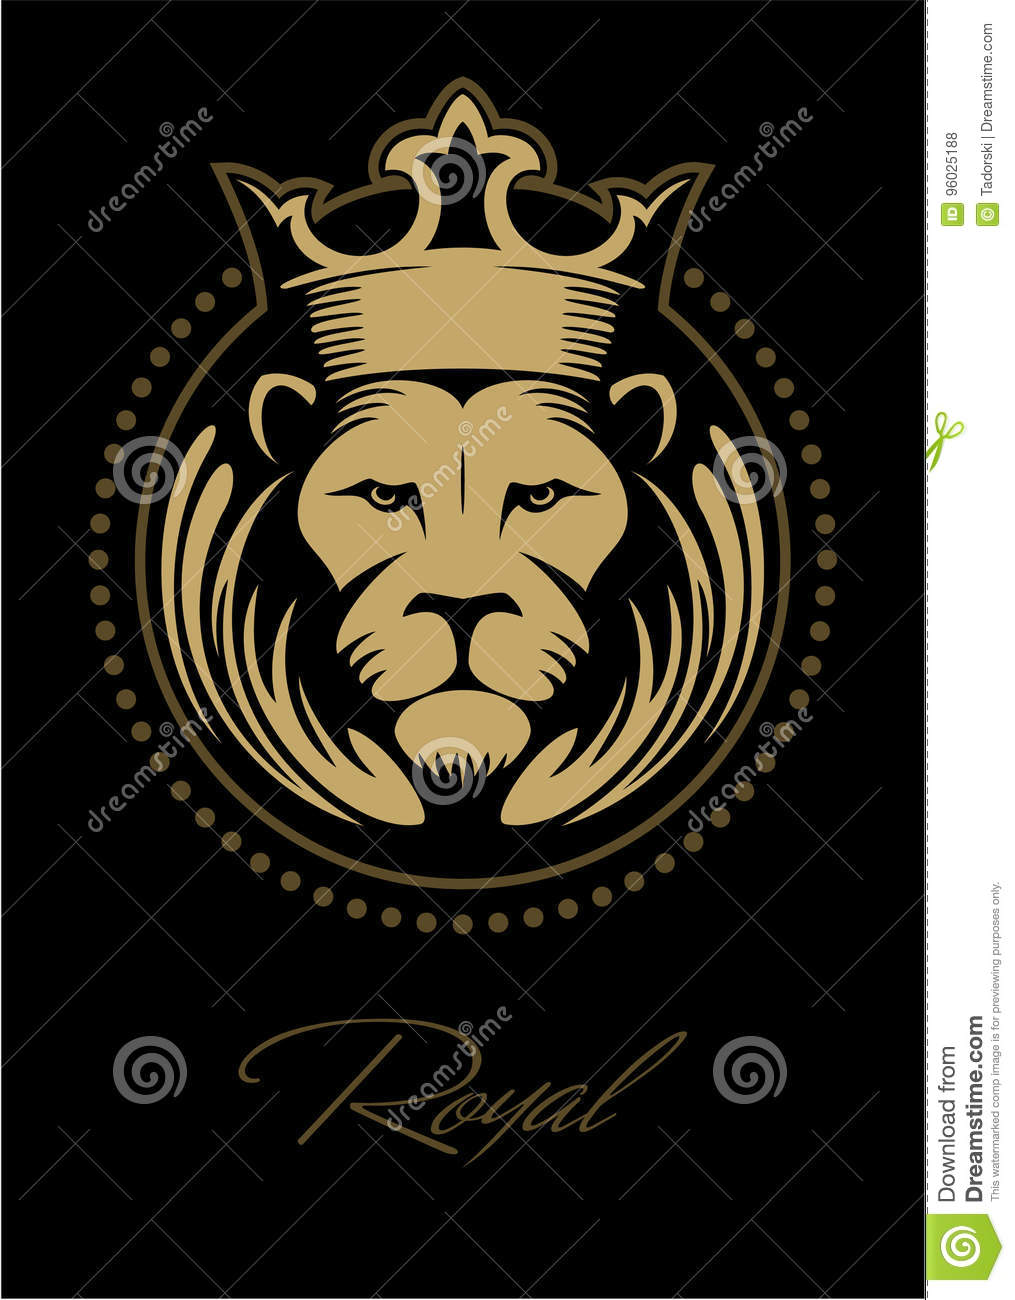 Blue lion logo with crown - photo#50